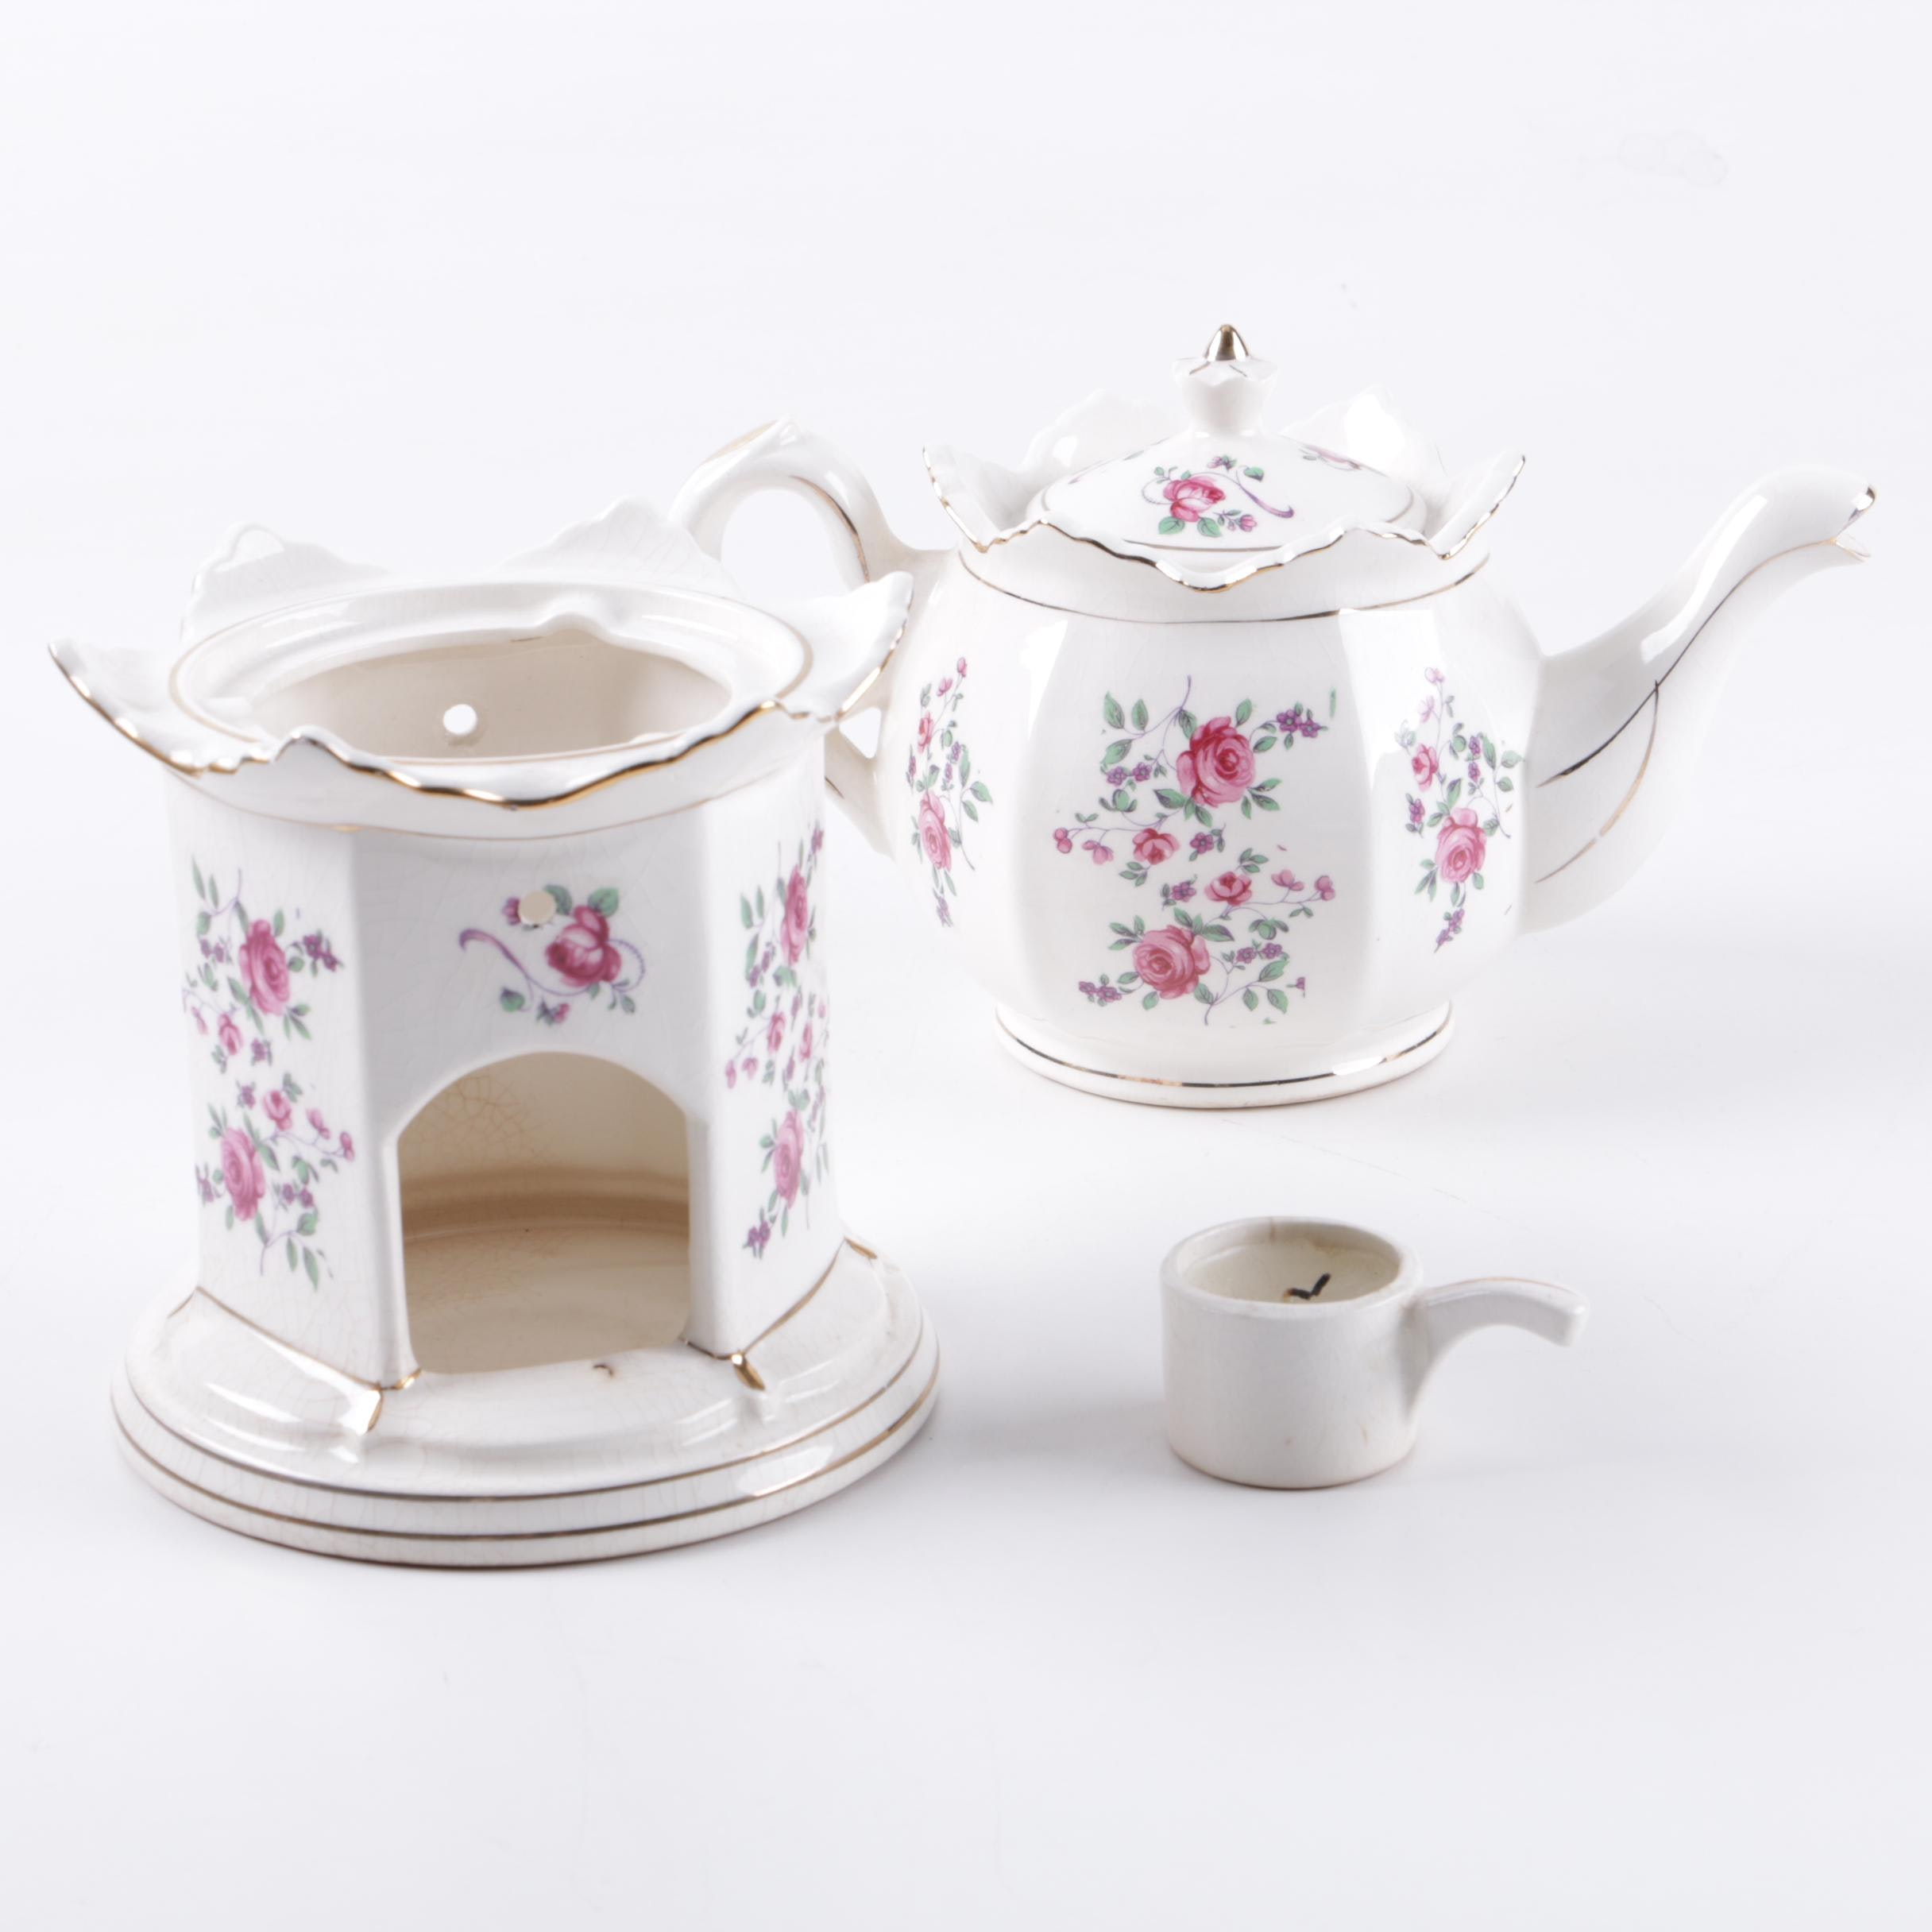 Ceramic Teapot with Candle Warmer Stand